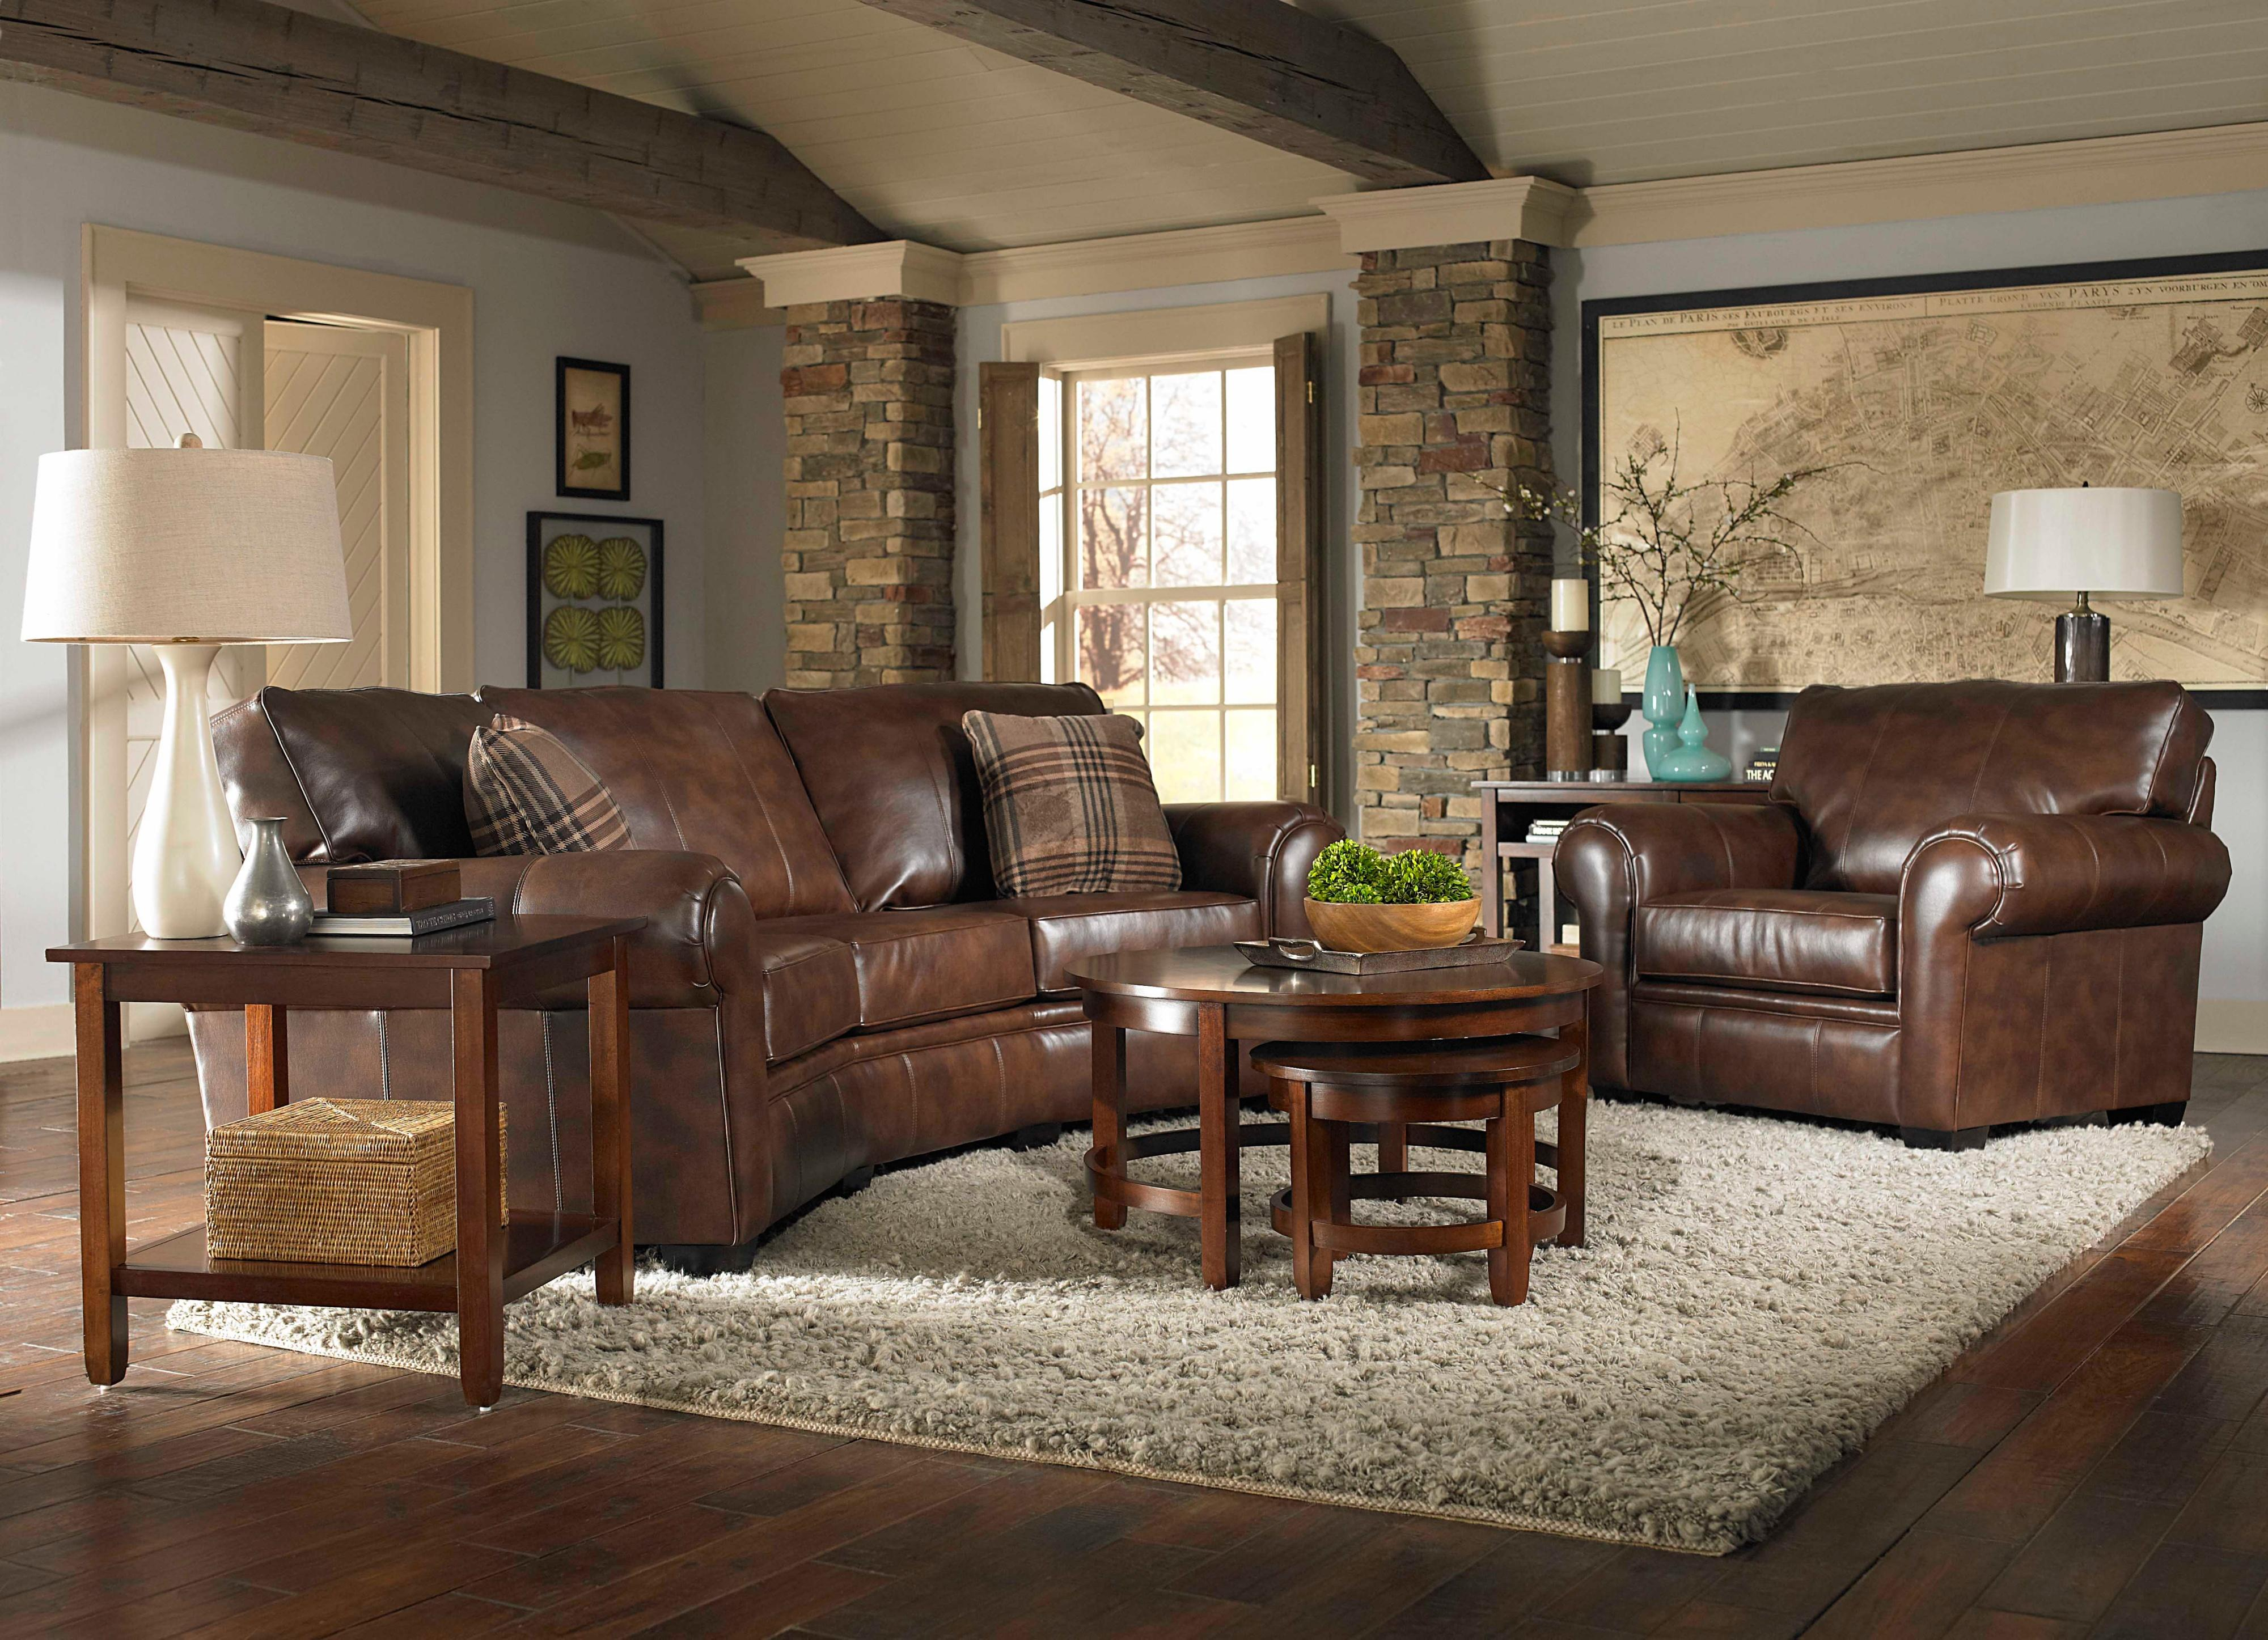 awesome brown leather sofa by broyhill furniture on wooden floor with gray rug for living room decor ideas